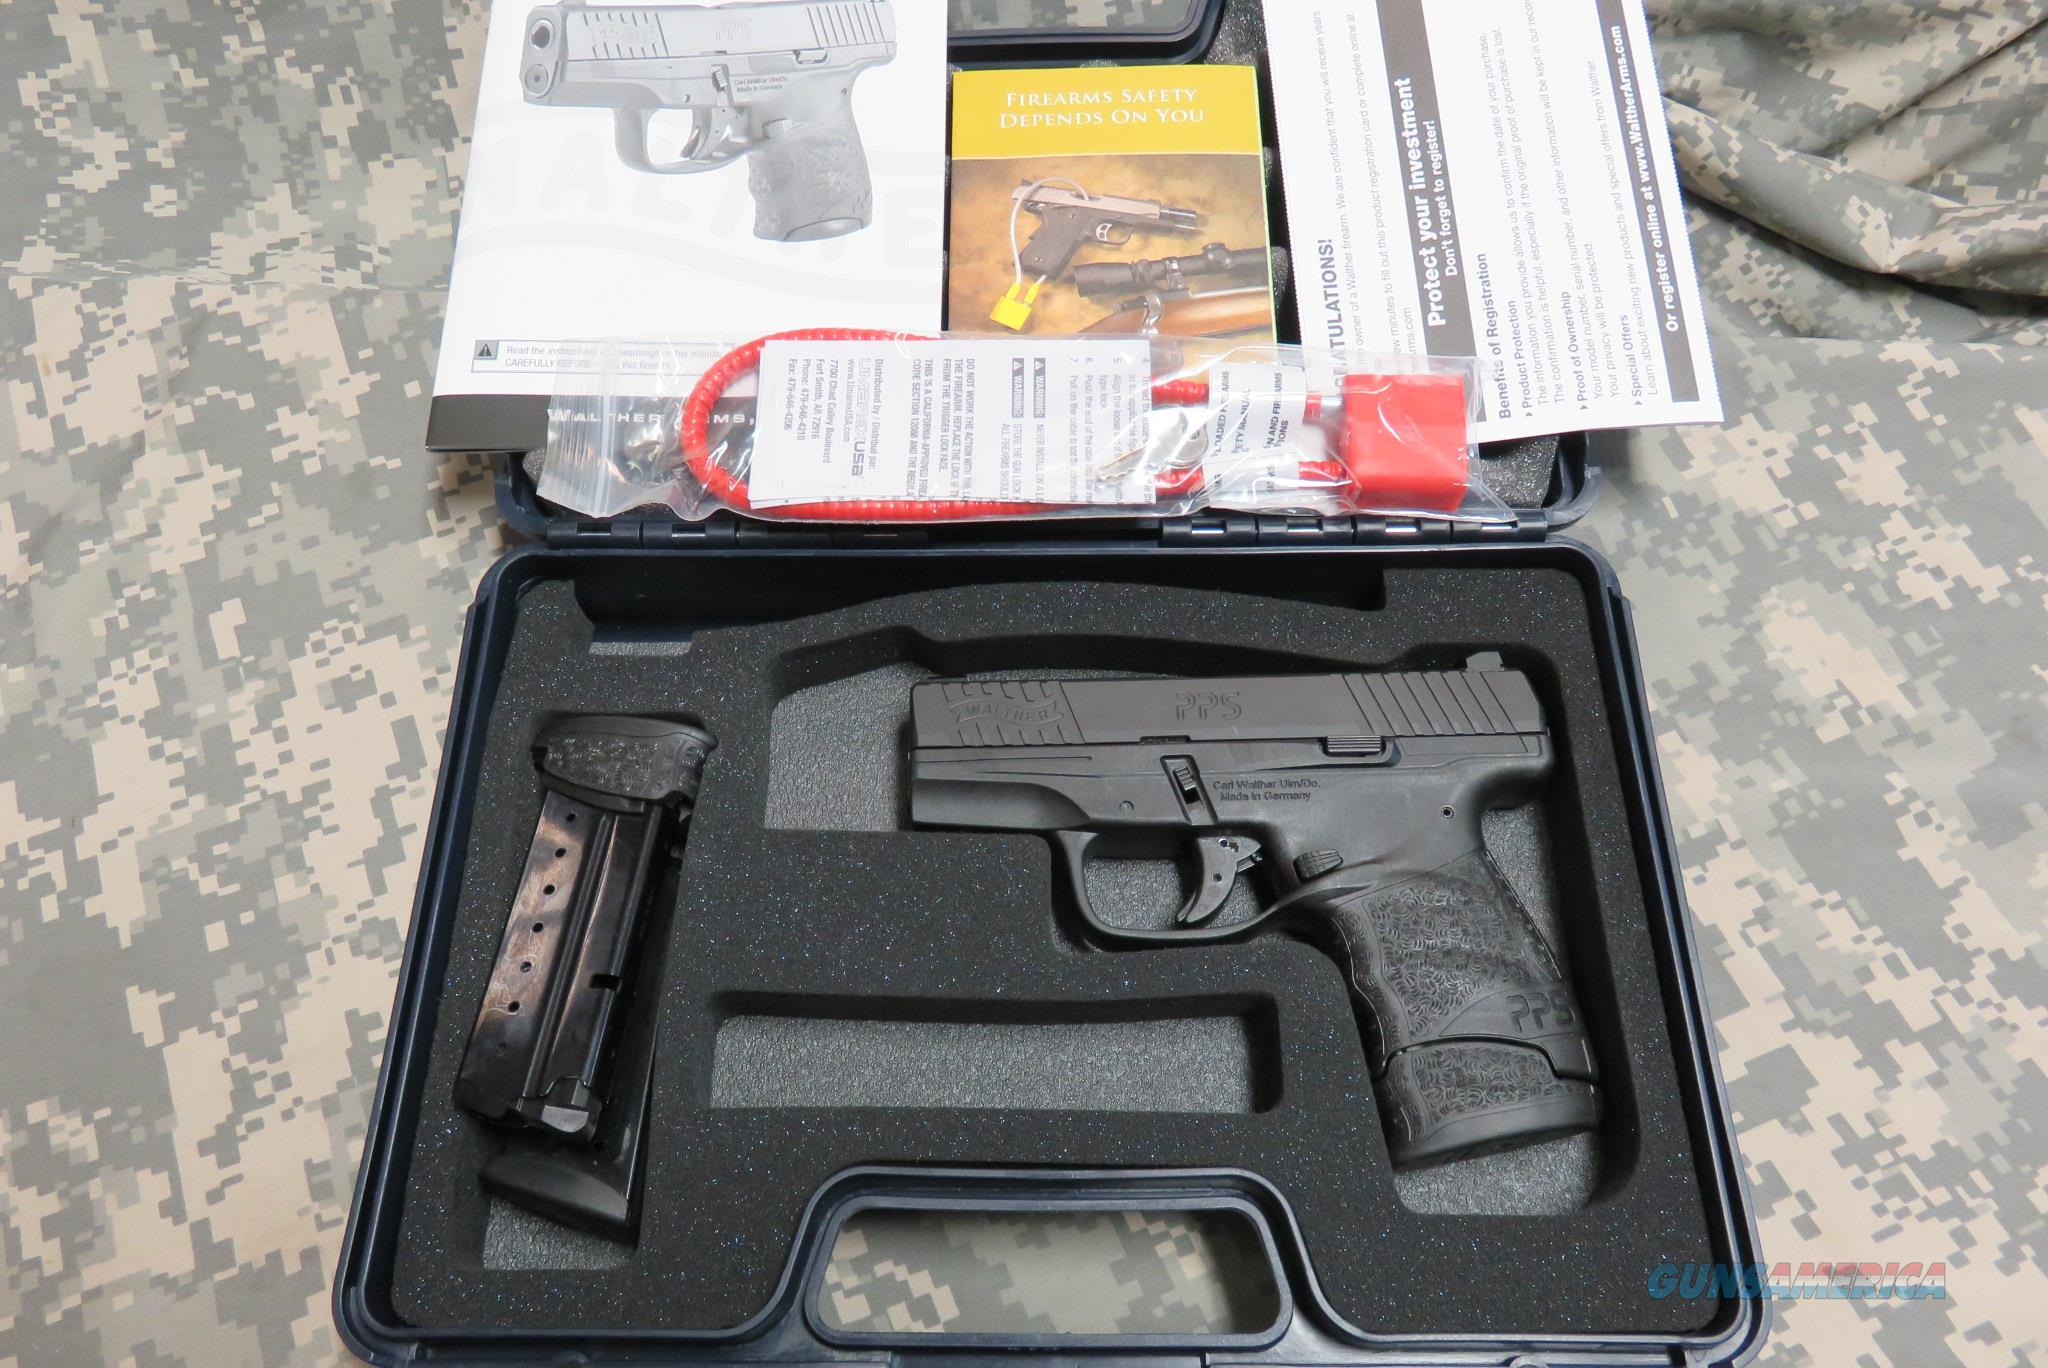 WALTHER PPS M2 9MM, NIGHT SIGHTS, 3 MAGS  Guns > Pistols > Walther Pistols > Post WWII > PPS